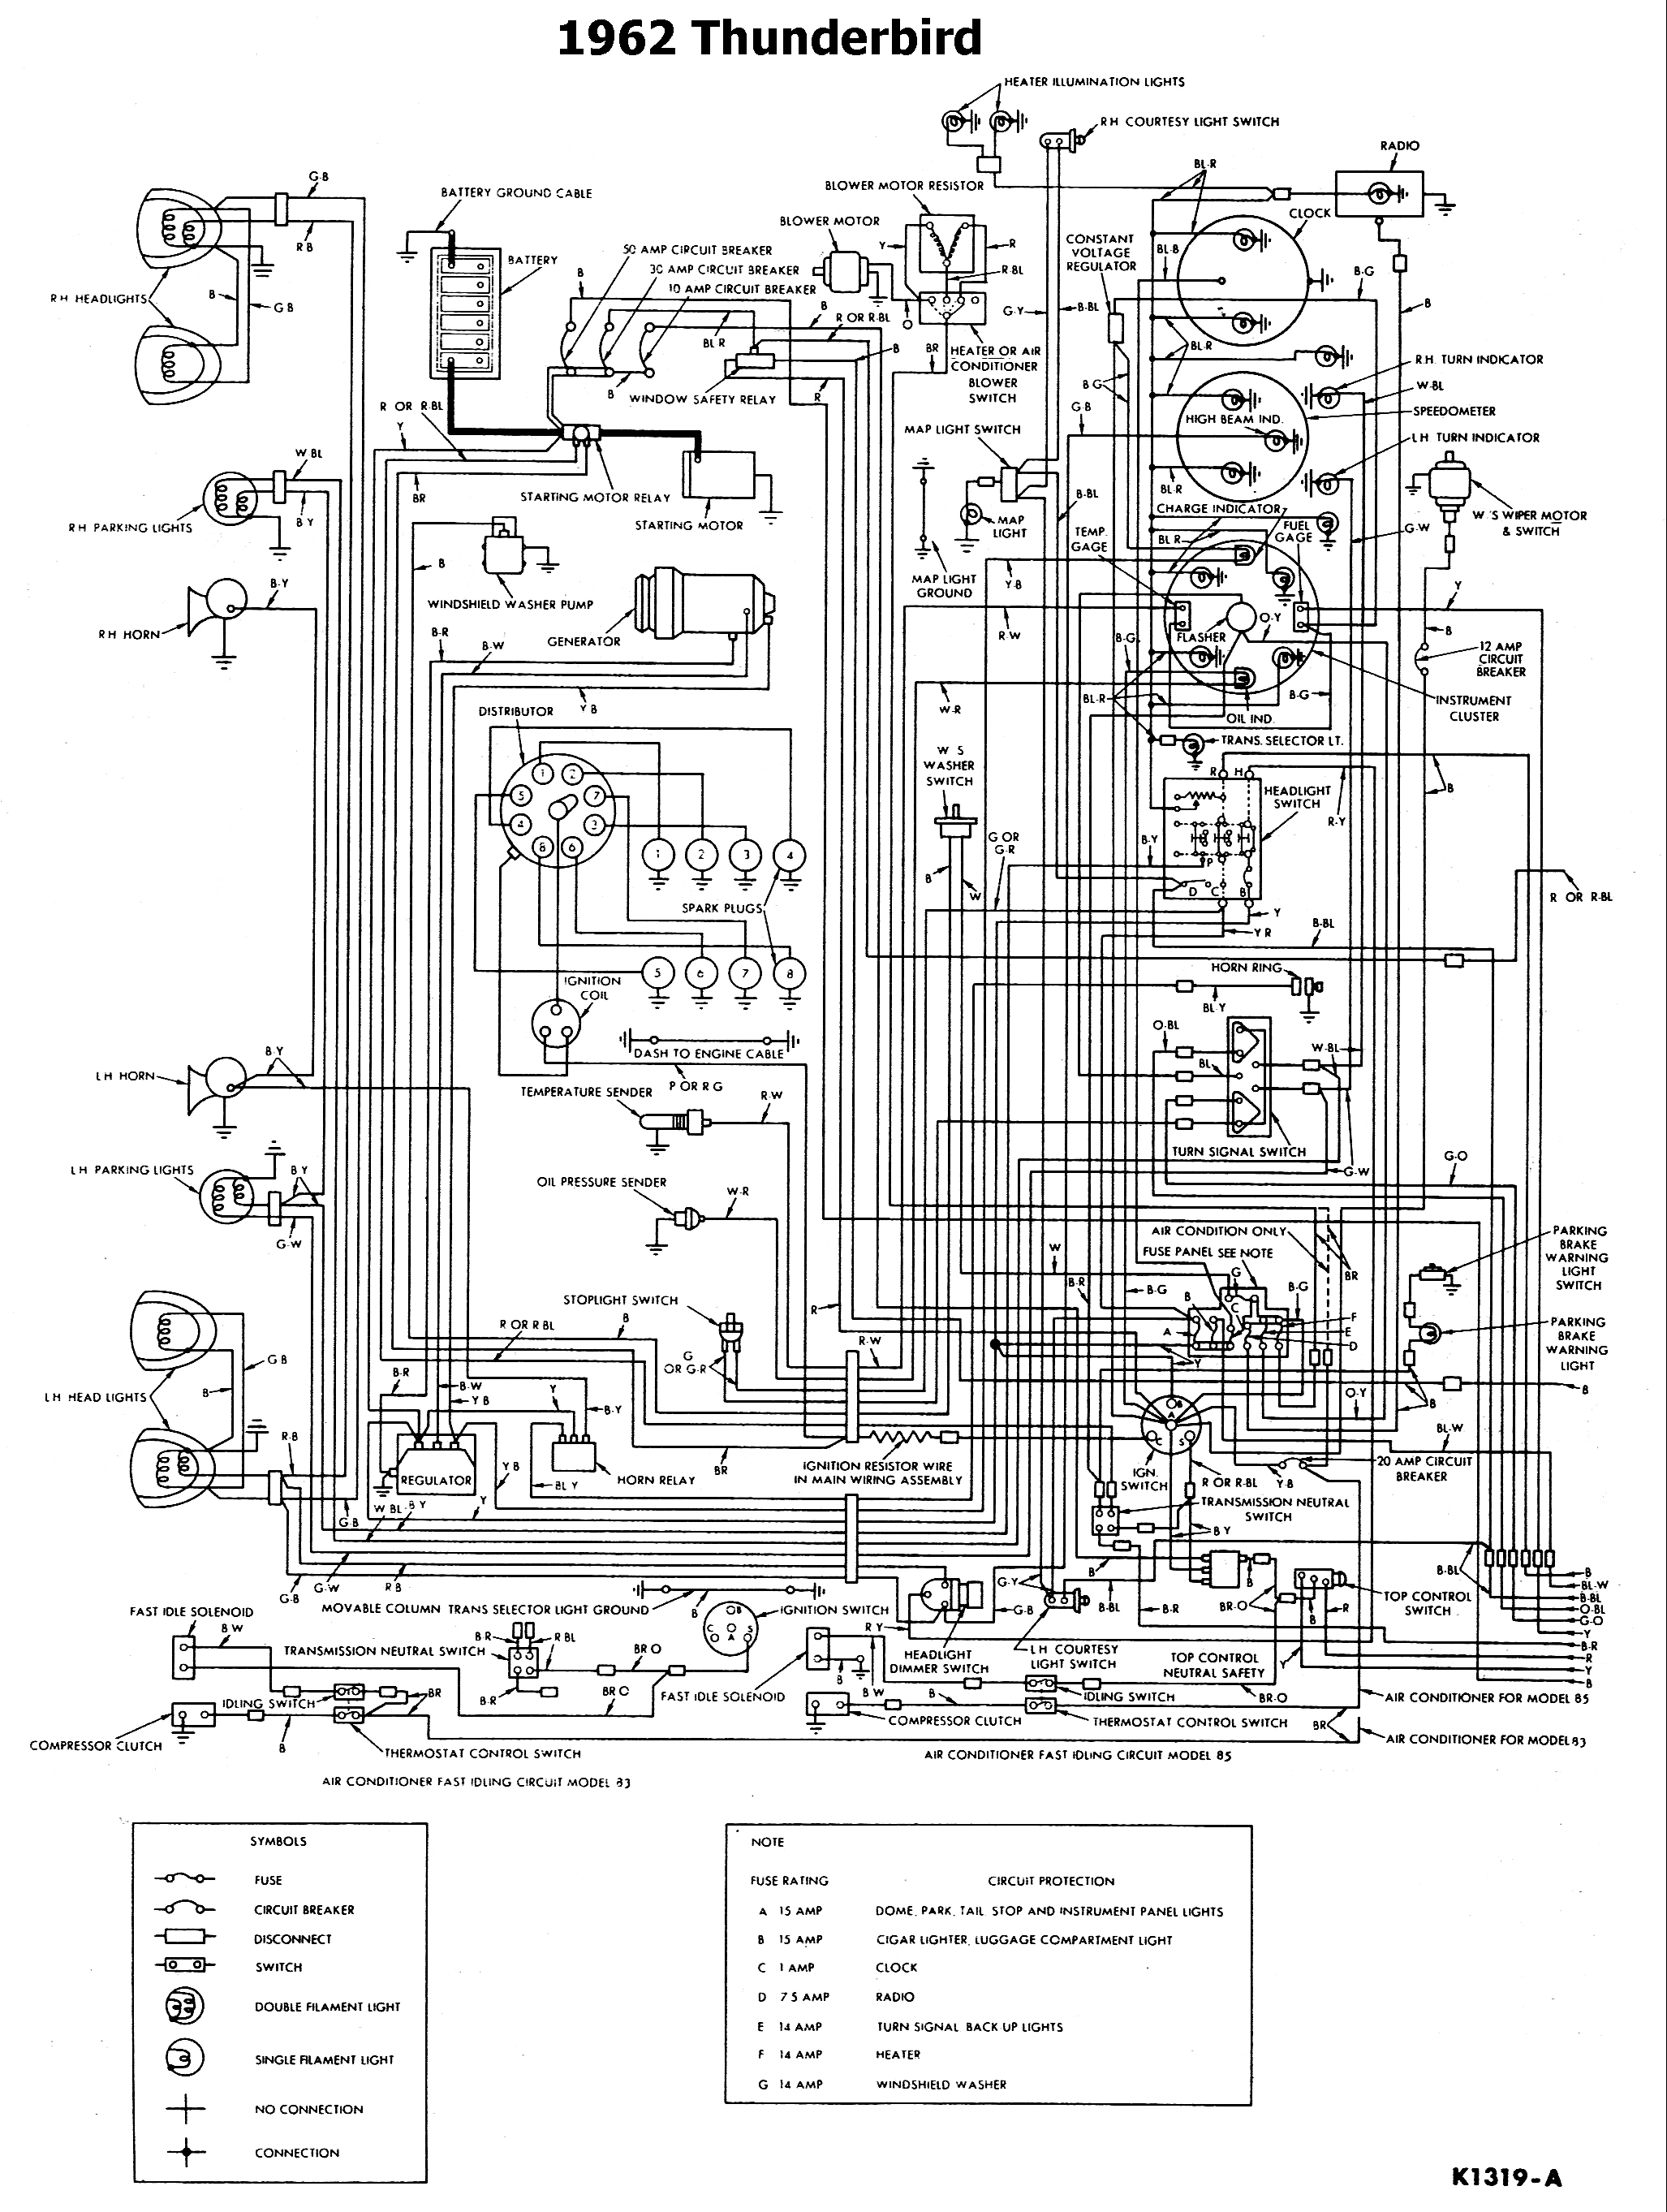 ford 600 12 volt conversion wiring diagram 12 volt generator wiring diagram ford fairlane i replaced the generator with an alternator in a 1962 t ...